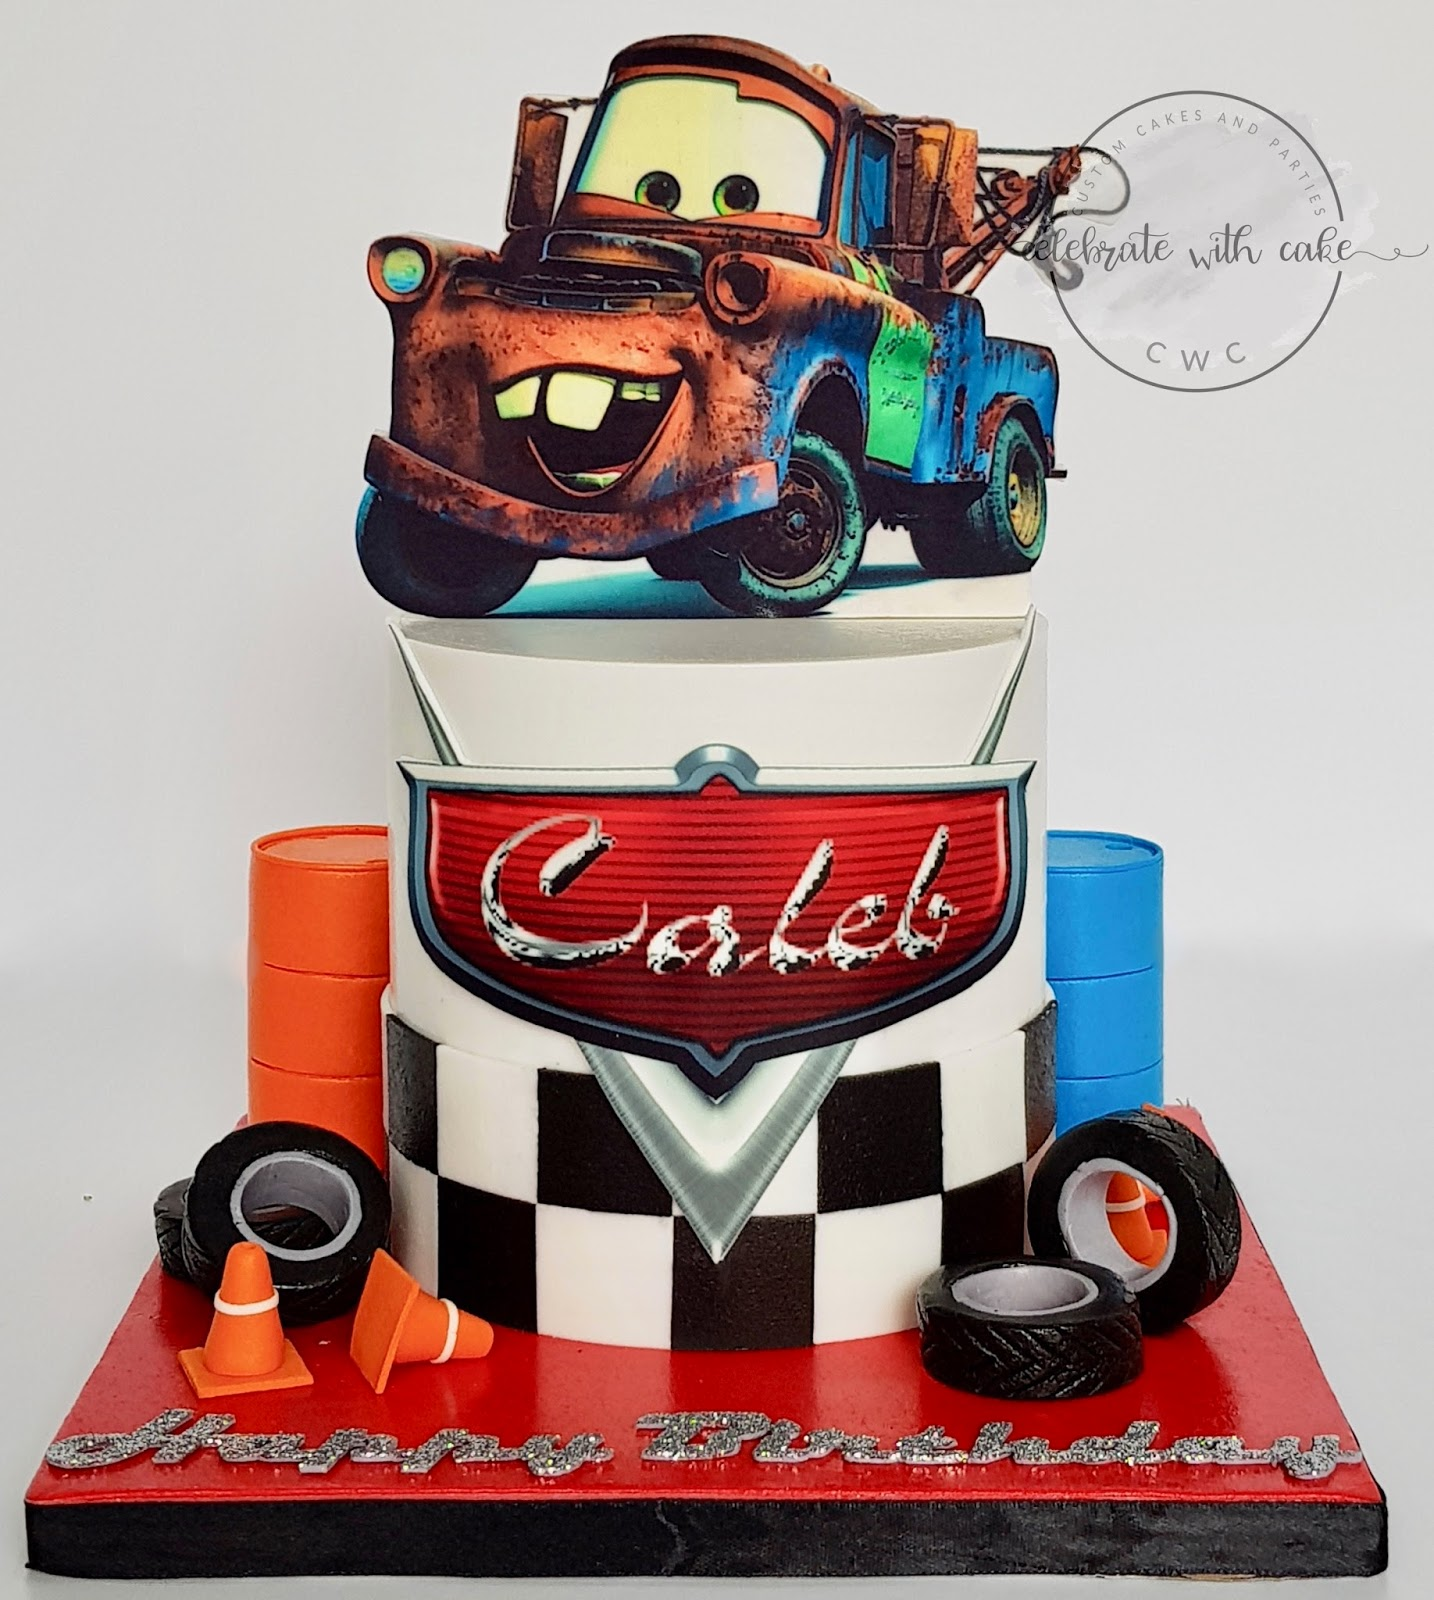 Celebrate With Cake Tow Truck